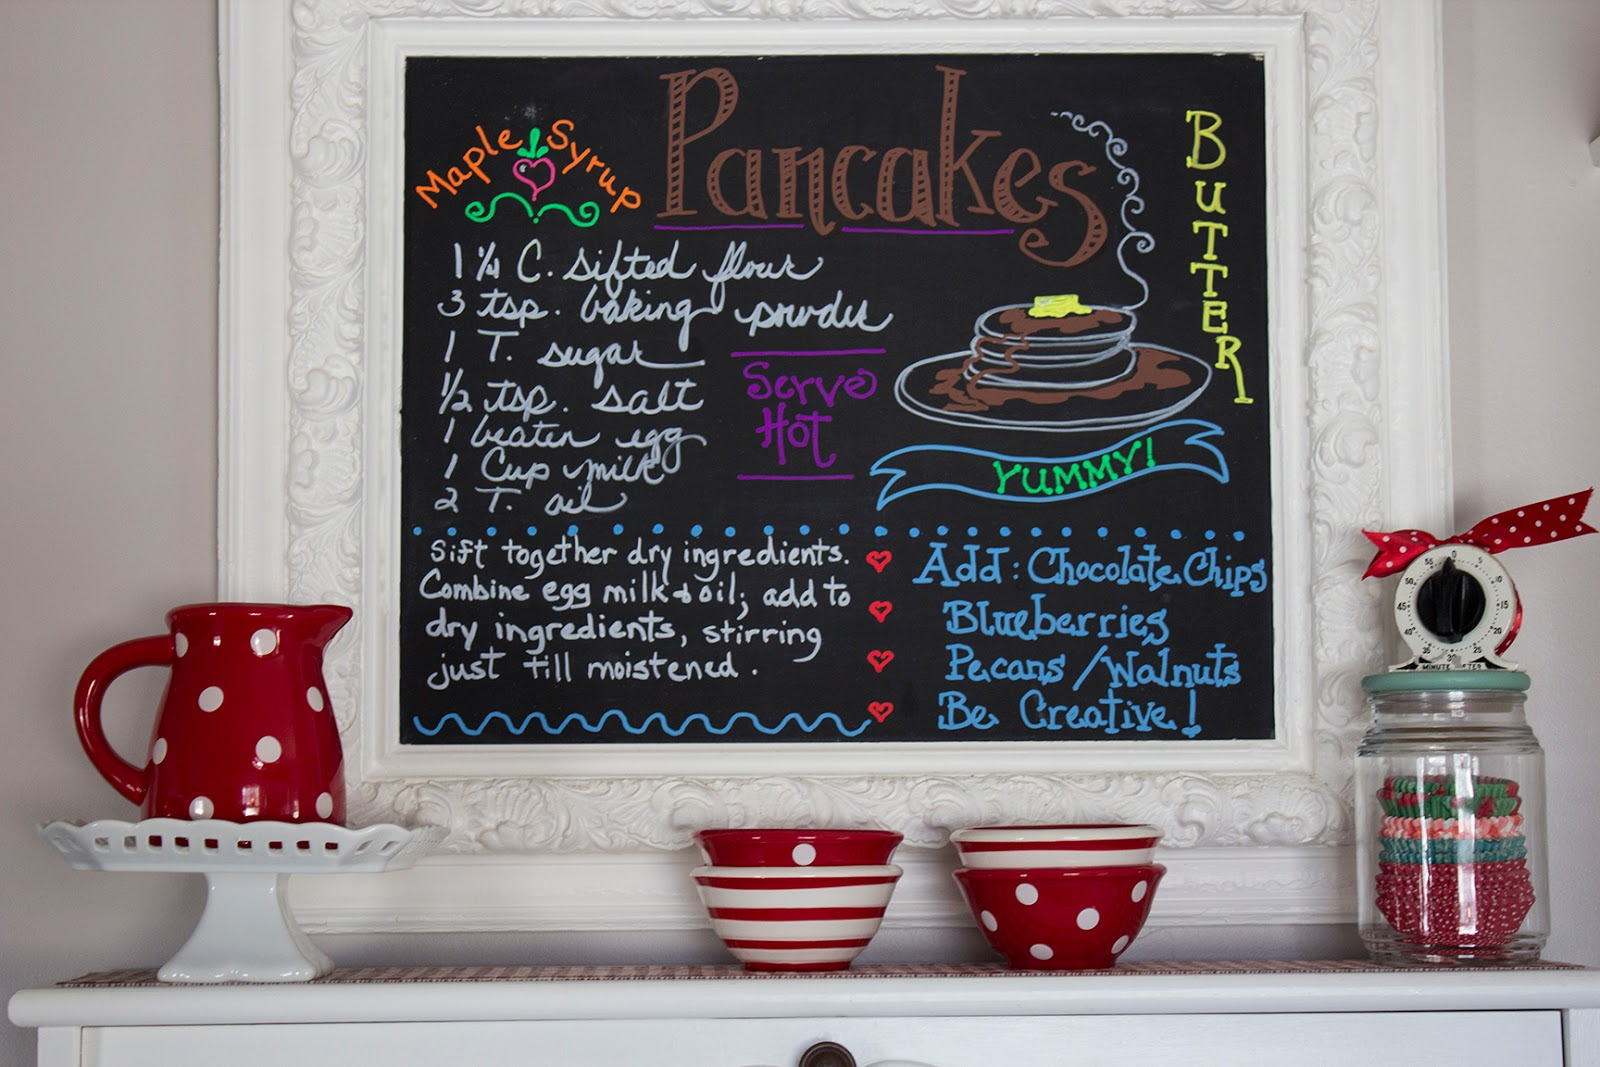 the colors are bright including some neon chalkboard markers and they are easy to clean off i used them on a surface that i painted with chalkboard paint